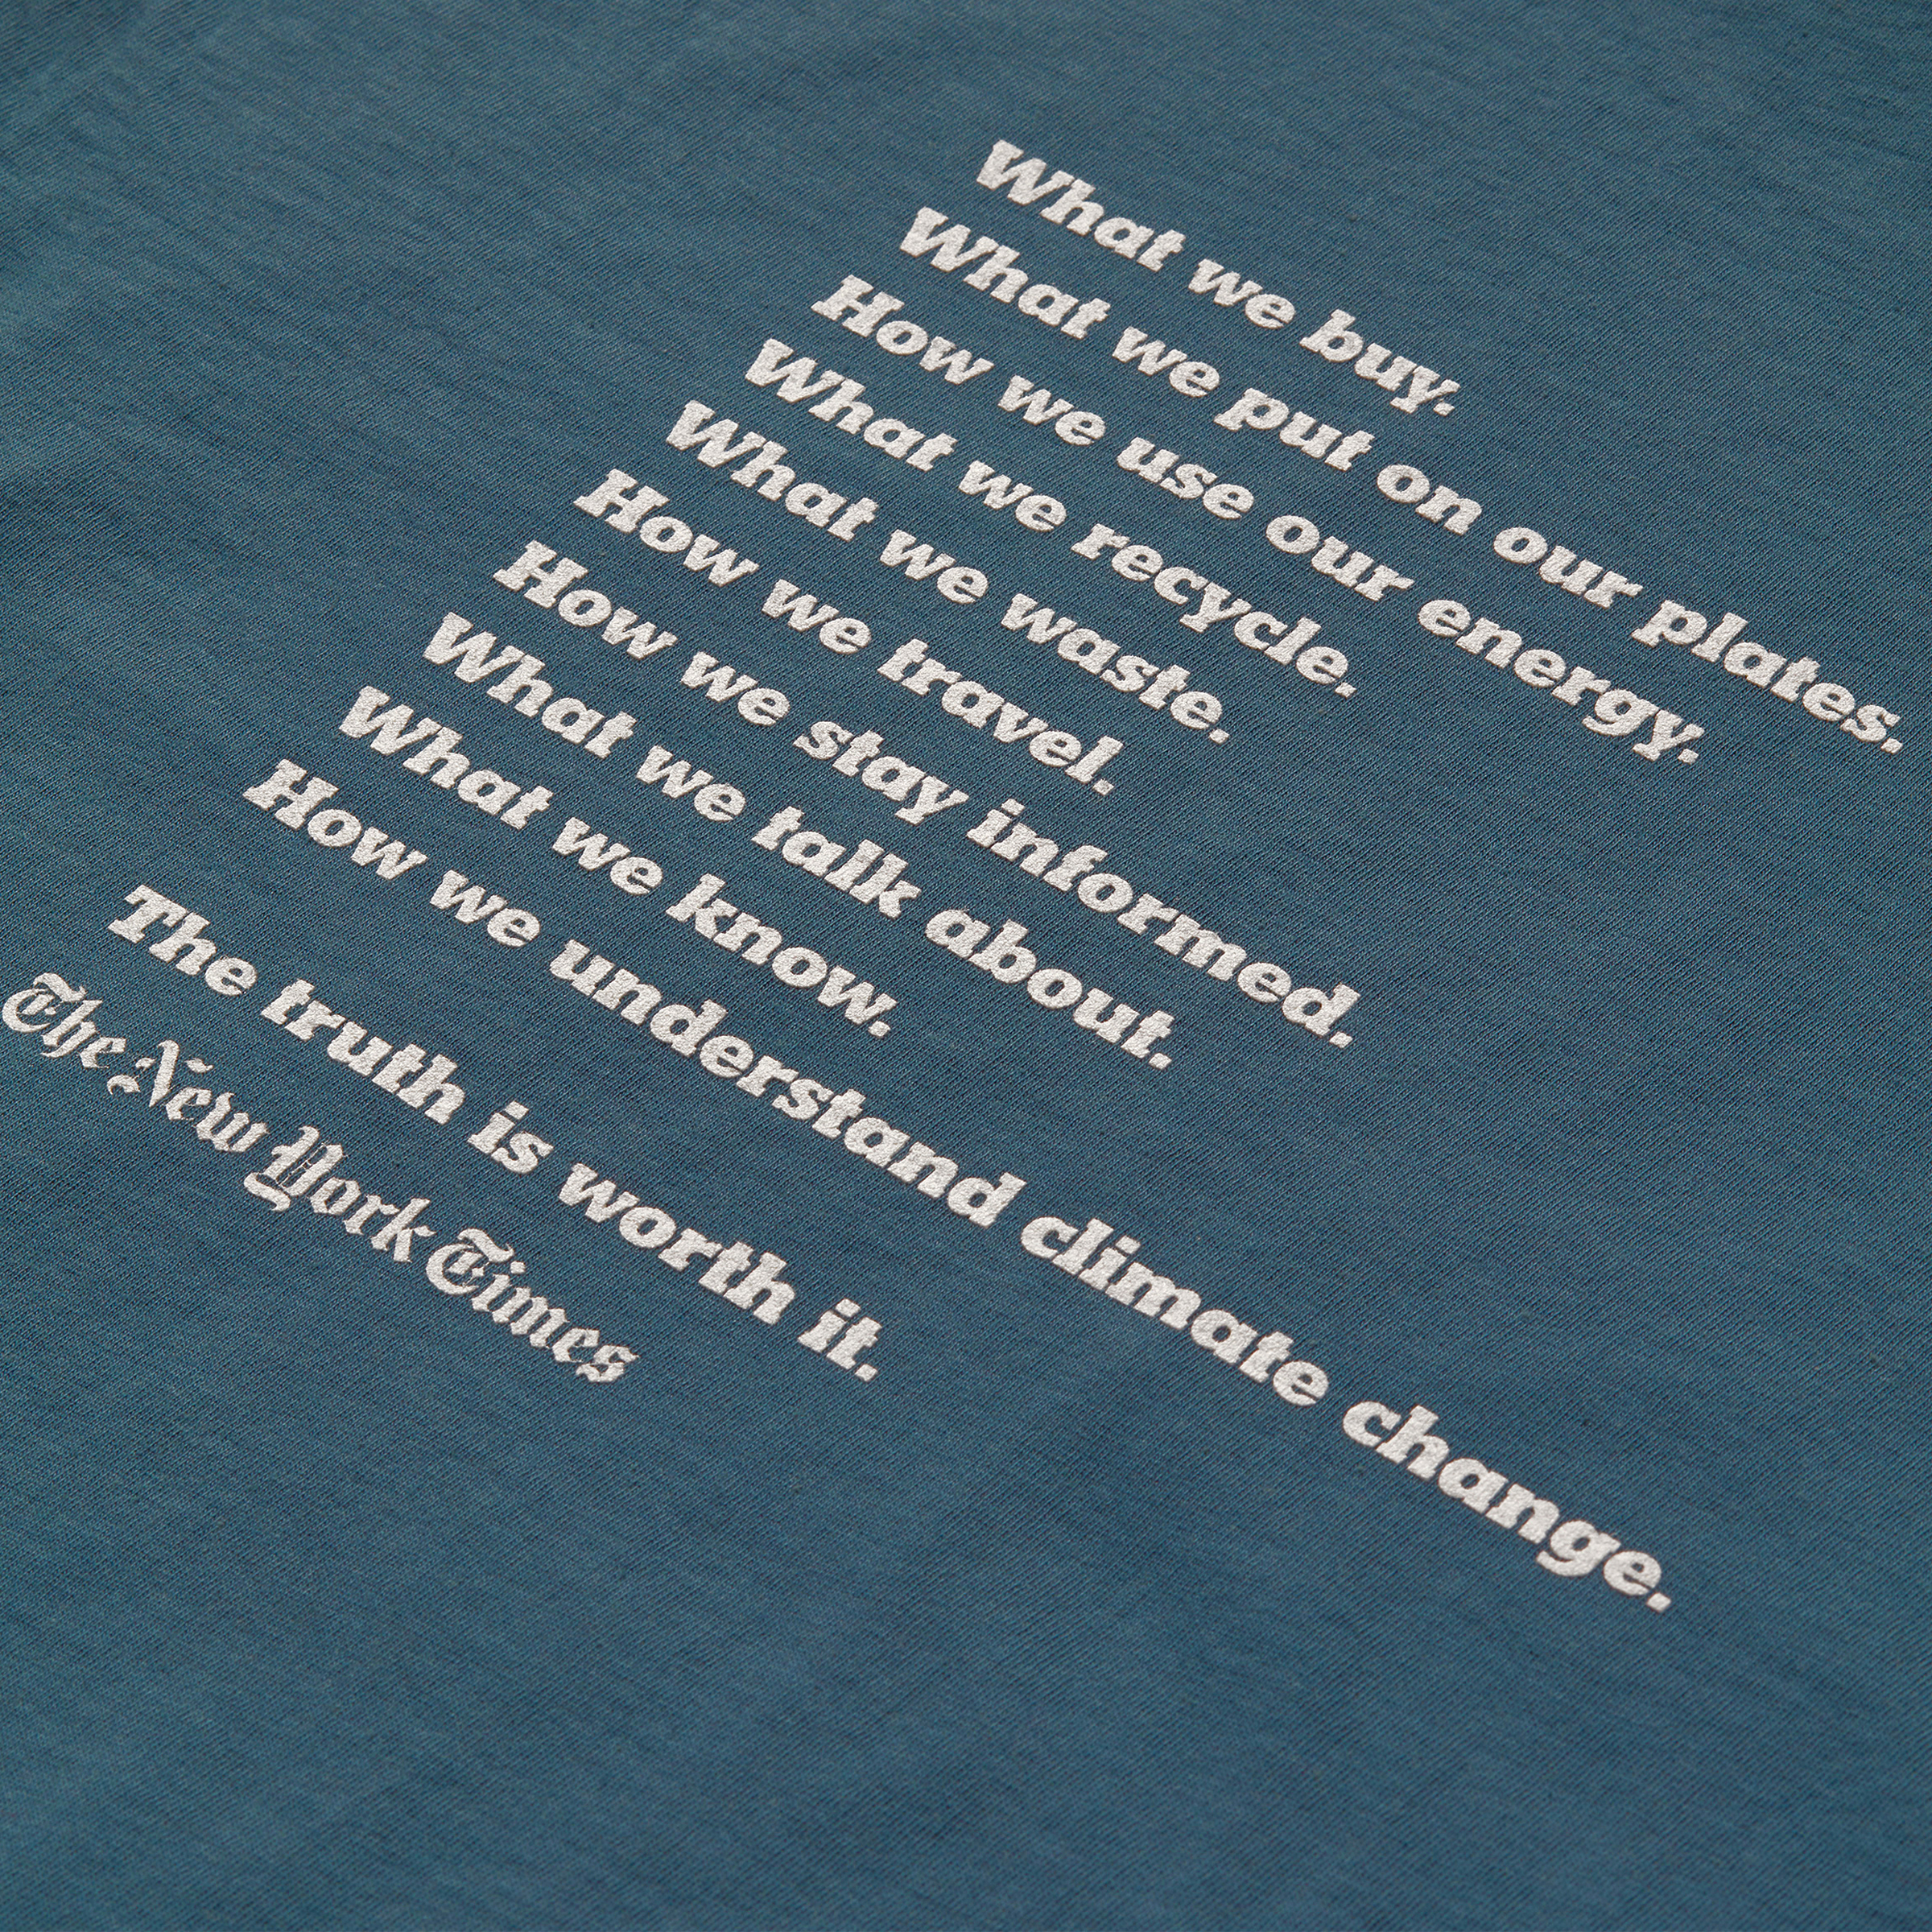 The back of Everlane's new T-shirt for The New York Times.